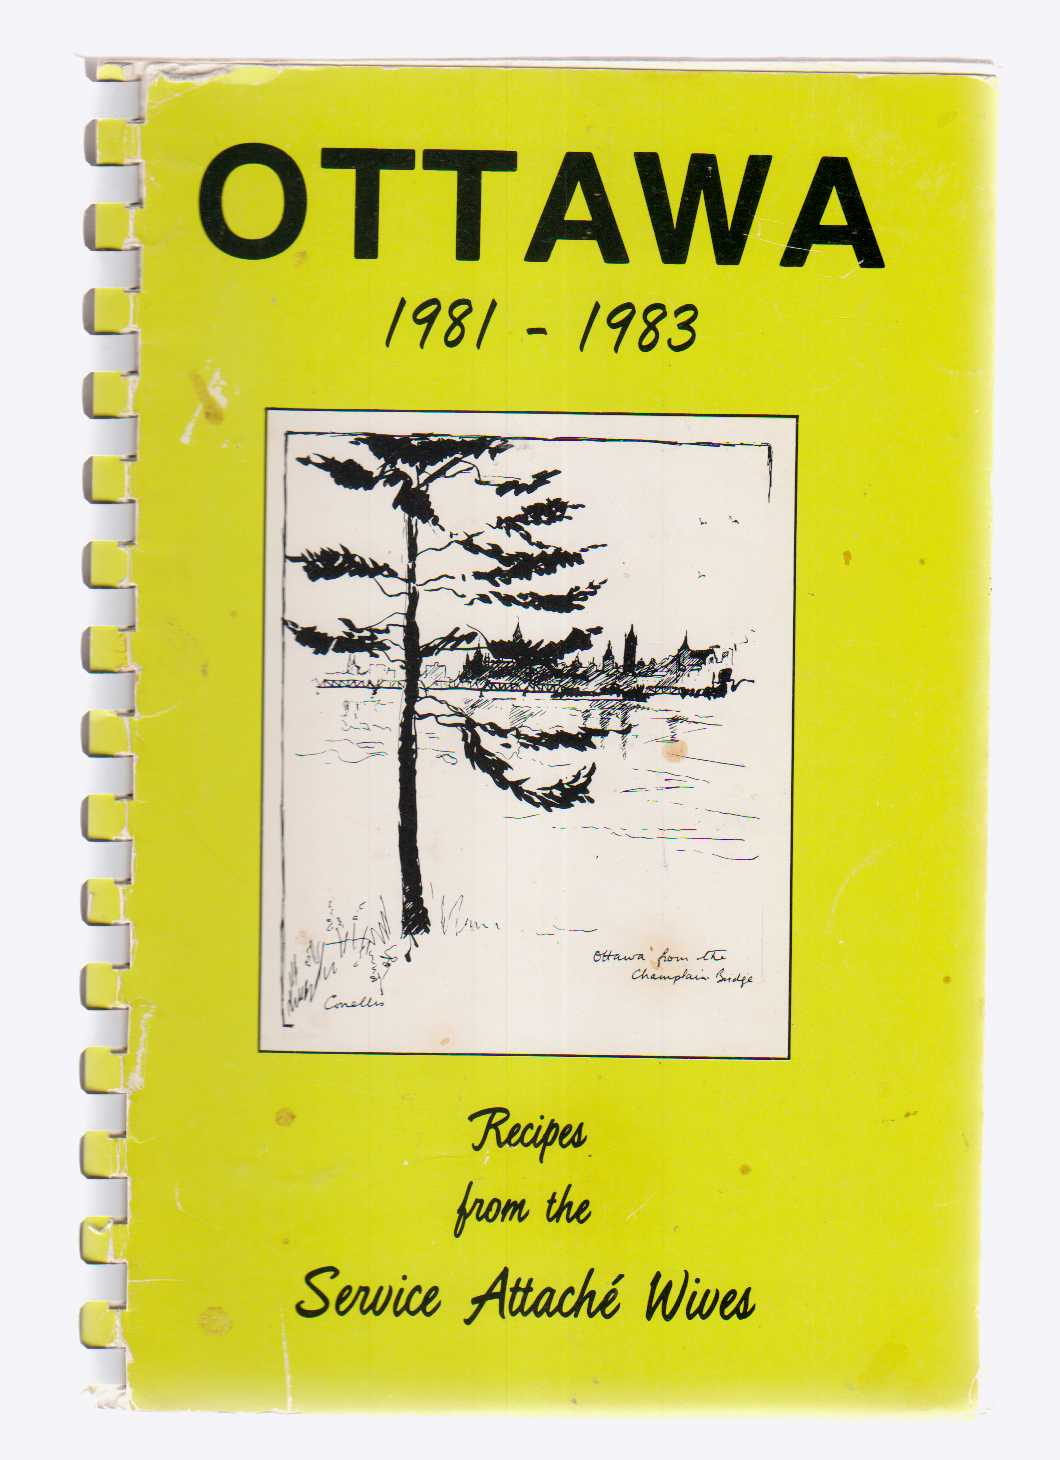 Image for Ottawa 1981 - 1983 Recipes from the Service Attaché Wives